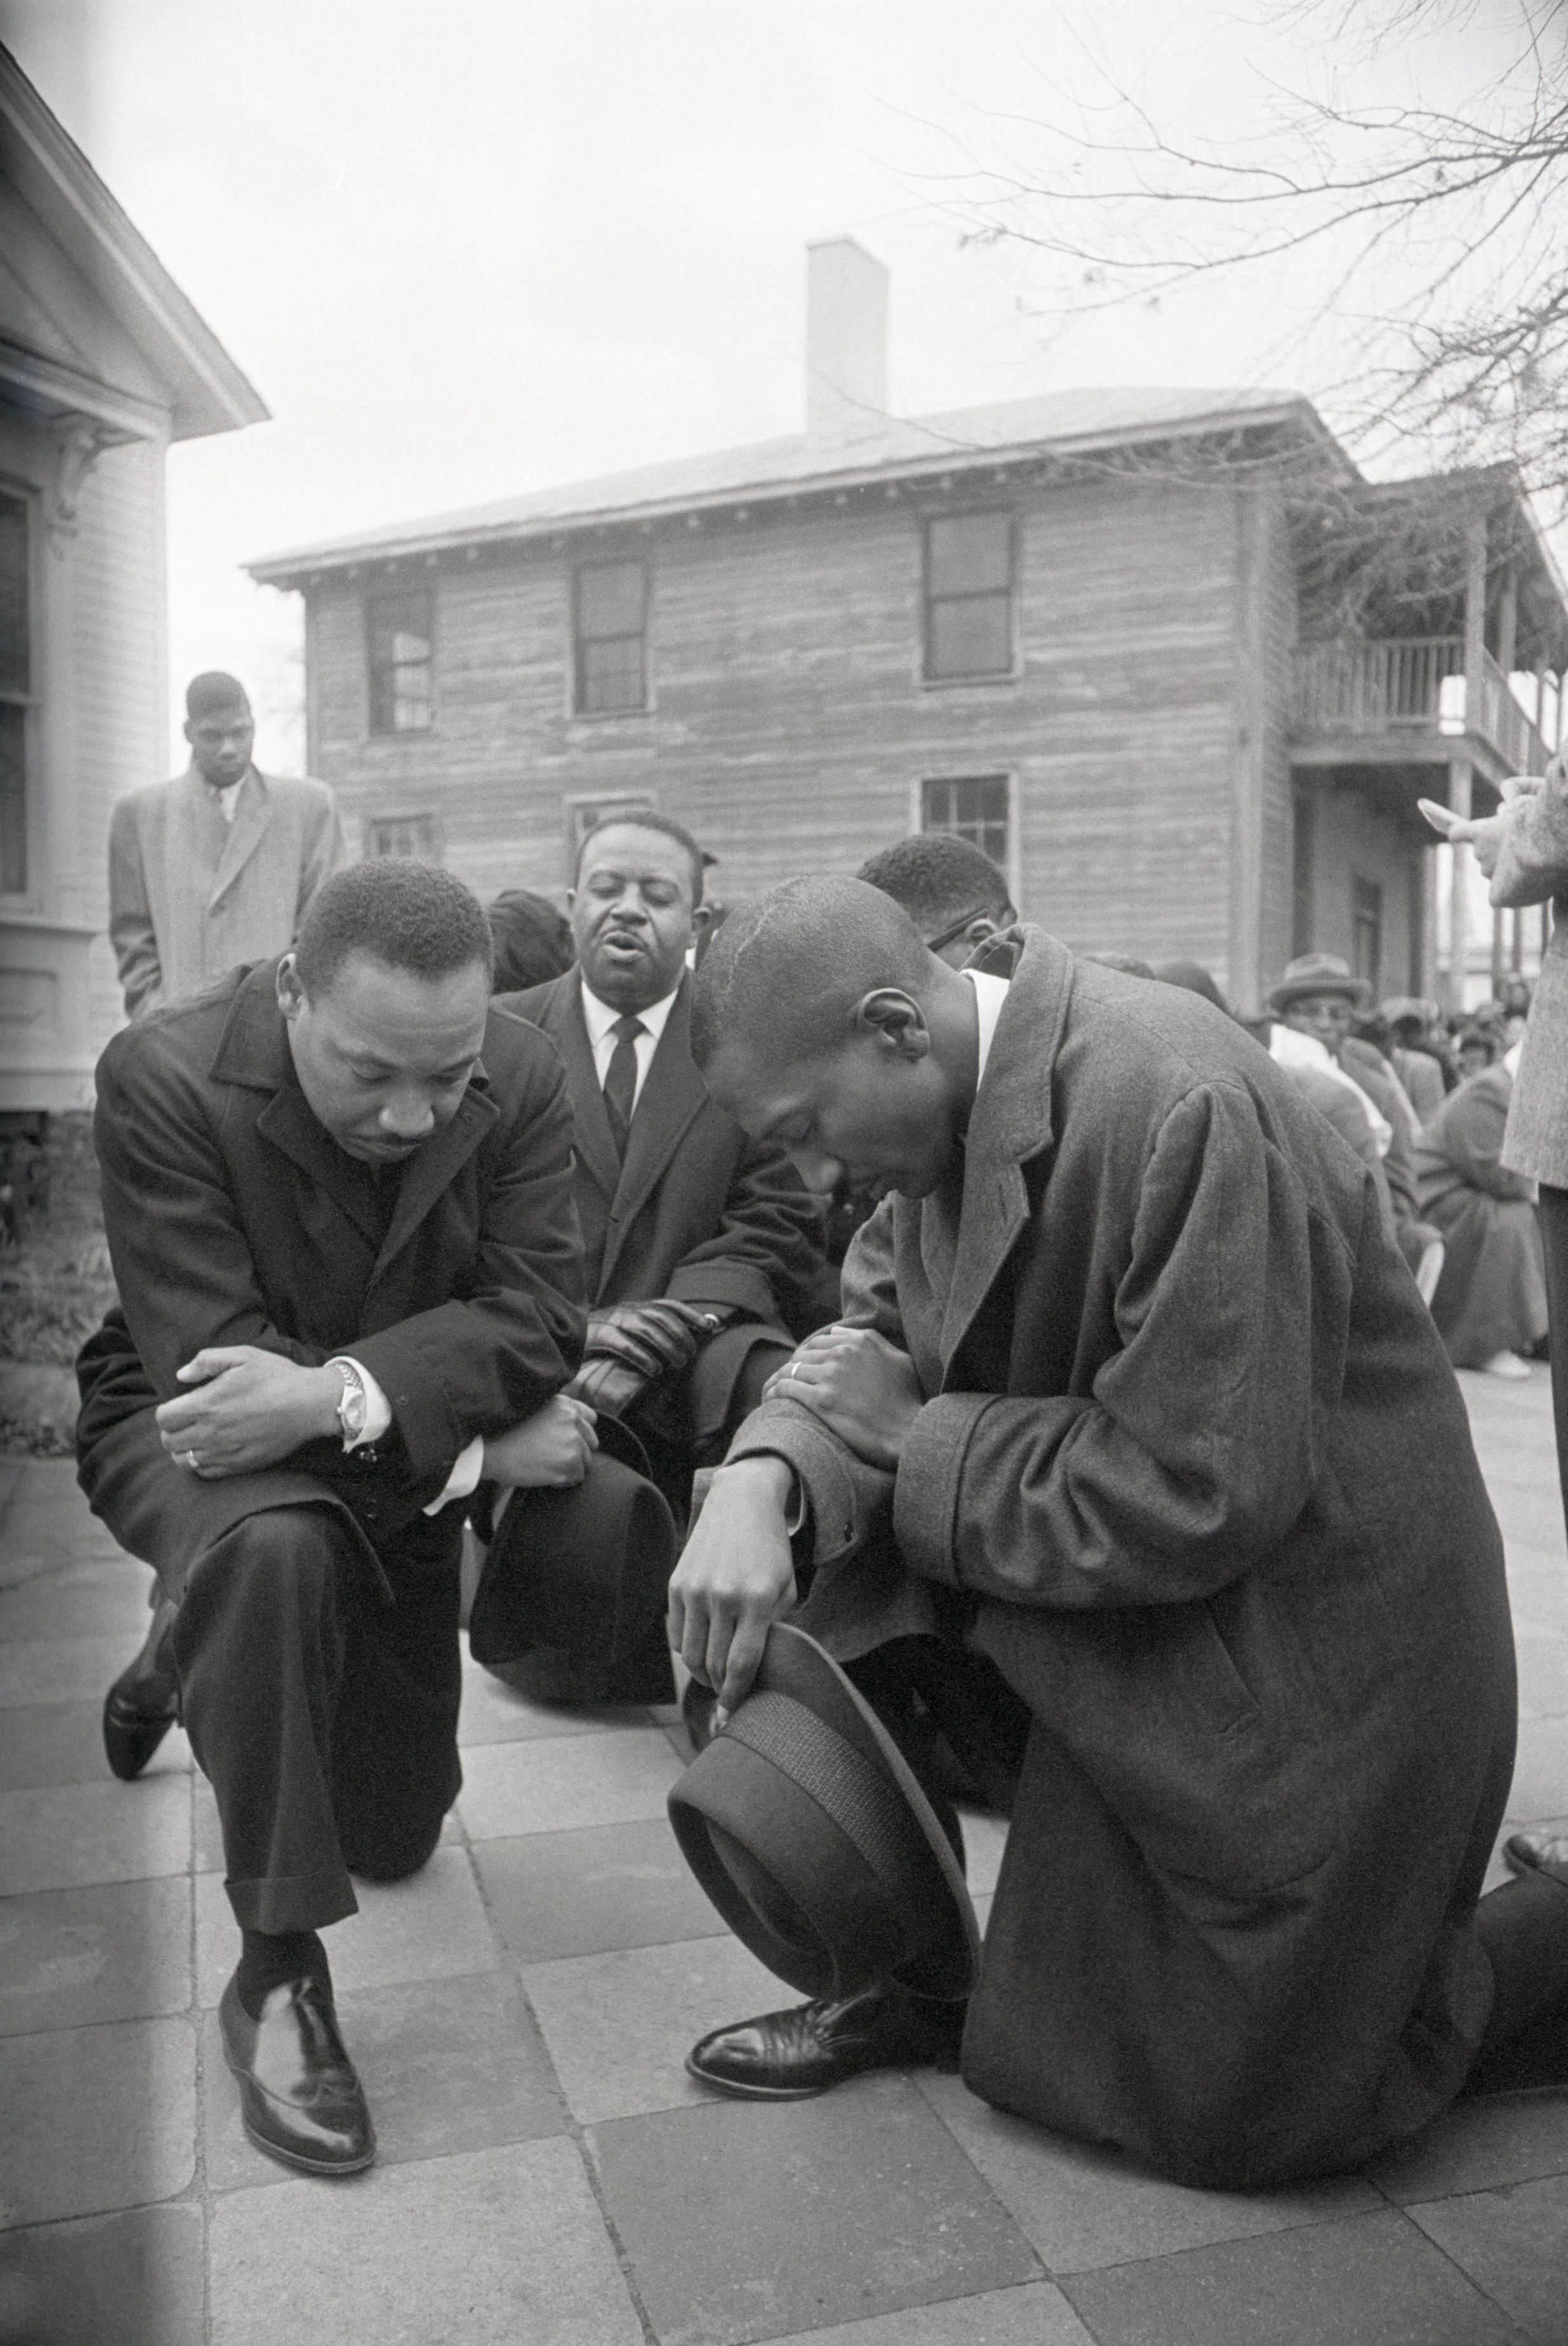 Civil rights leader Martin Luther King Jr. and Ralph Abernathy (center, back) kneel with a group in prayer prior to going to jail in Selma, Alabama. The group was arrested on February 1st after attempting to gain the right to vote. Following the prayer, the group peacefully marched to jail.